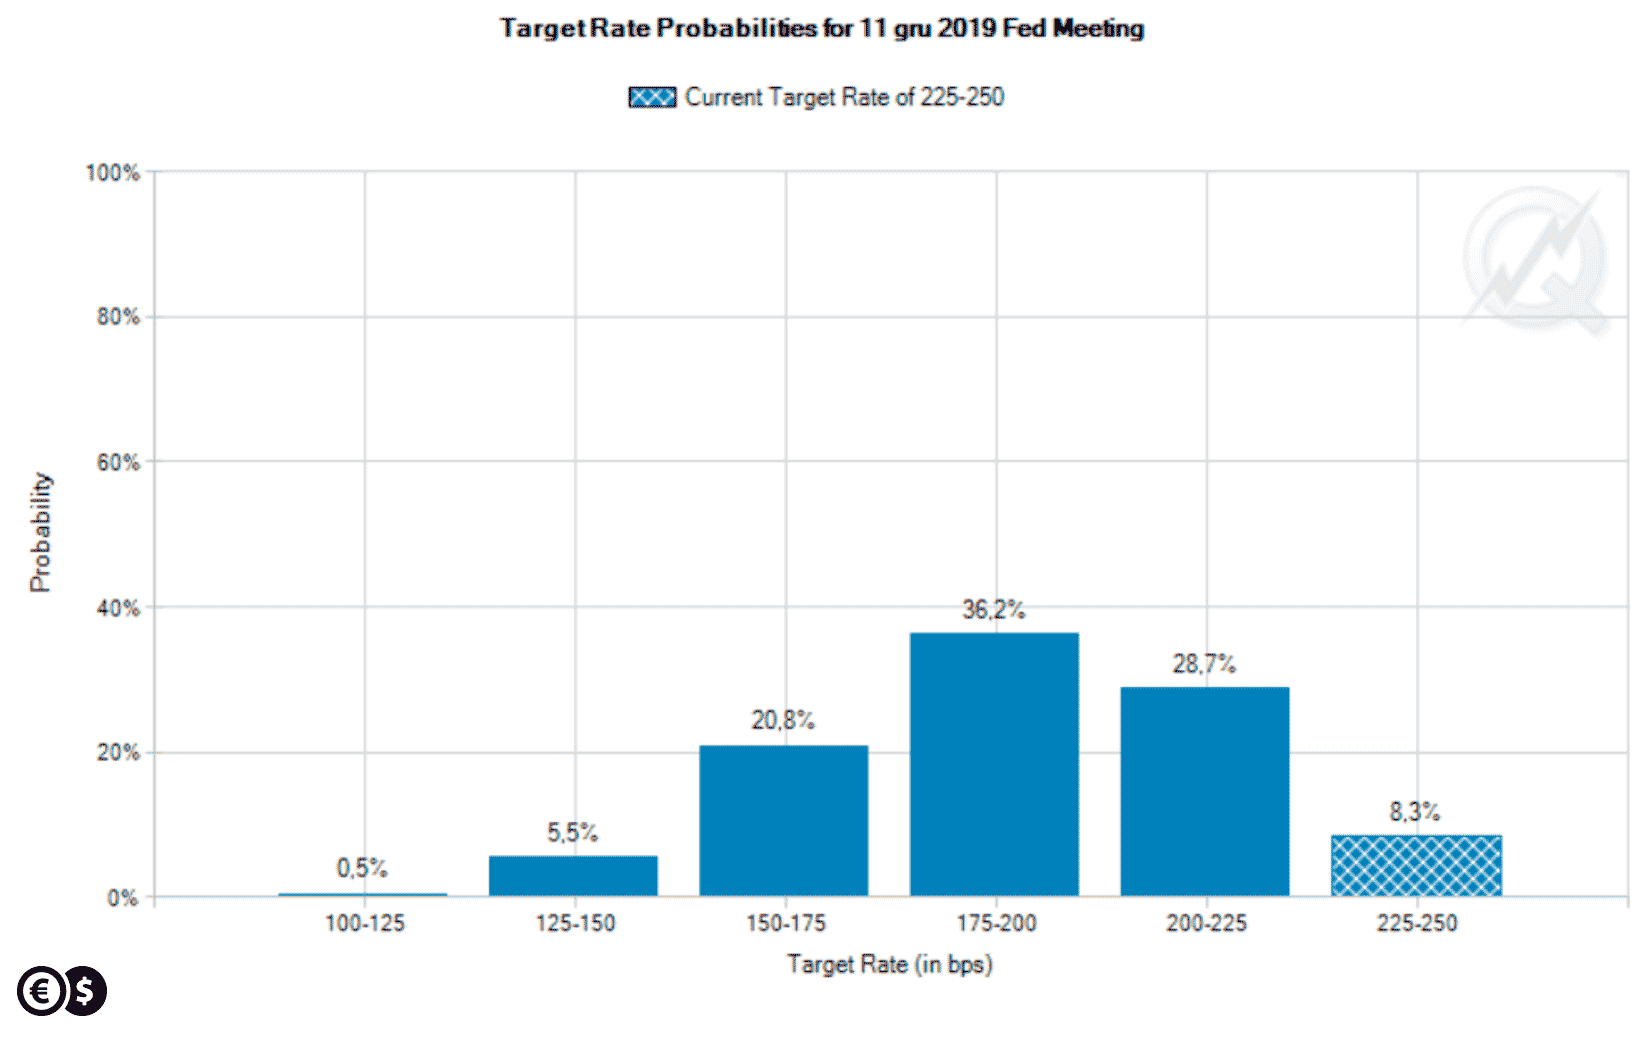 Fed Funds Futures target rate probabilities